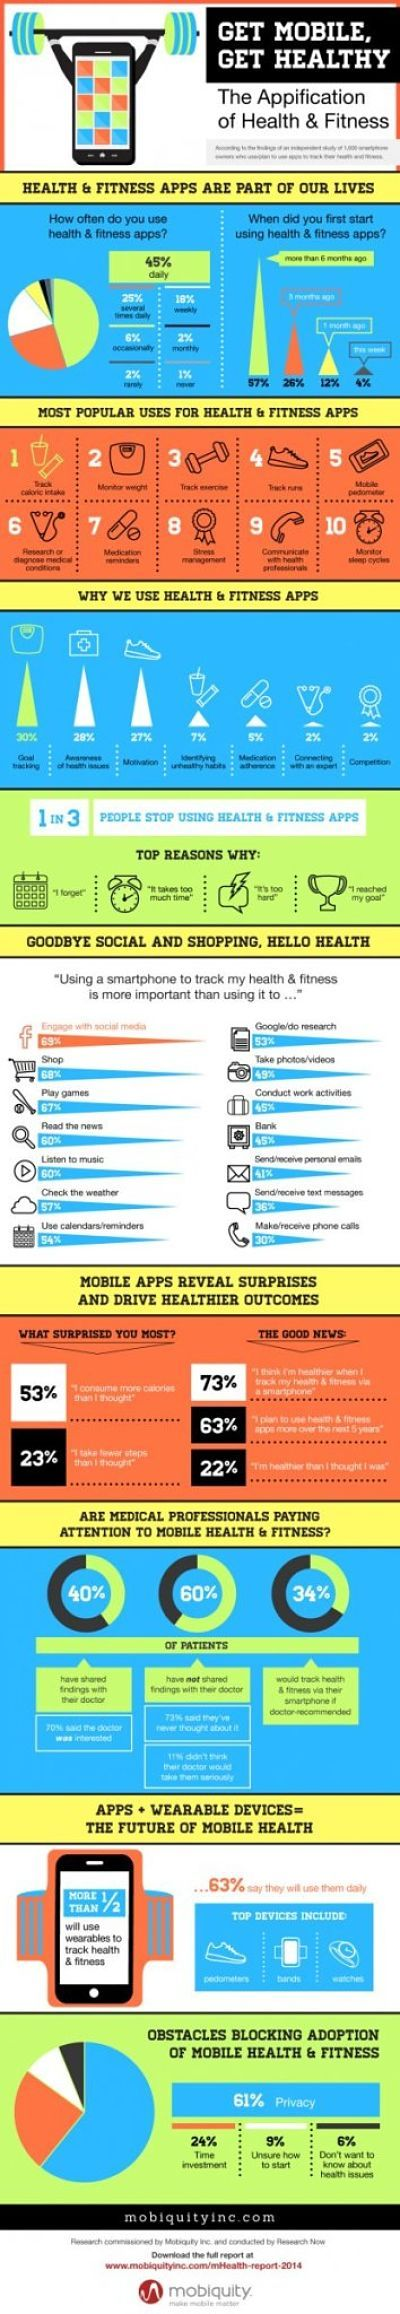 #Digitalhealth wearables [infographic]